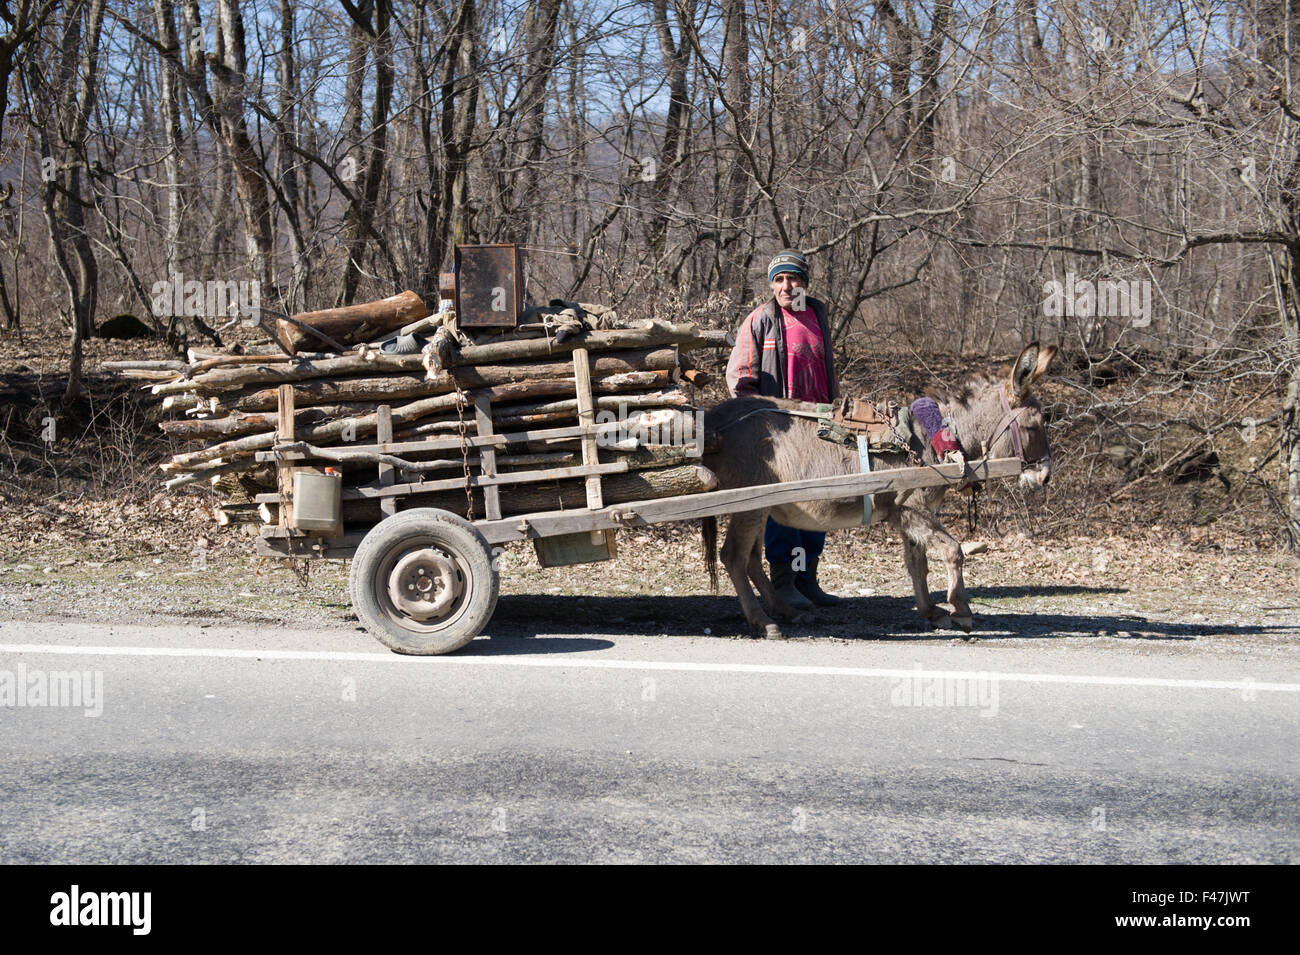 Animal welfare image of a donkey resting for a moment whilst carrying a trailer of heavy wooden logs in rural Georgia. - Stock Image